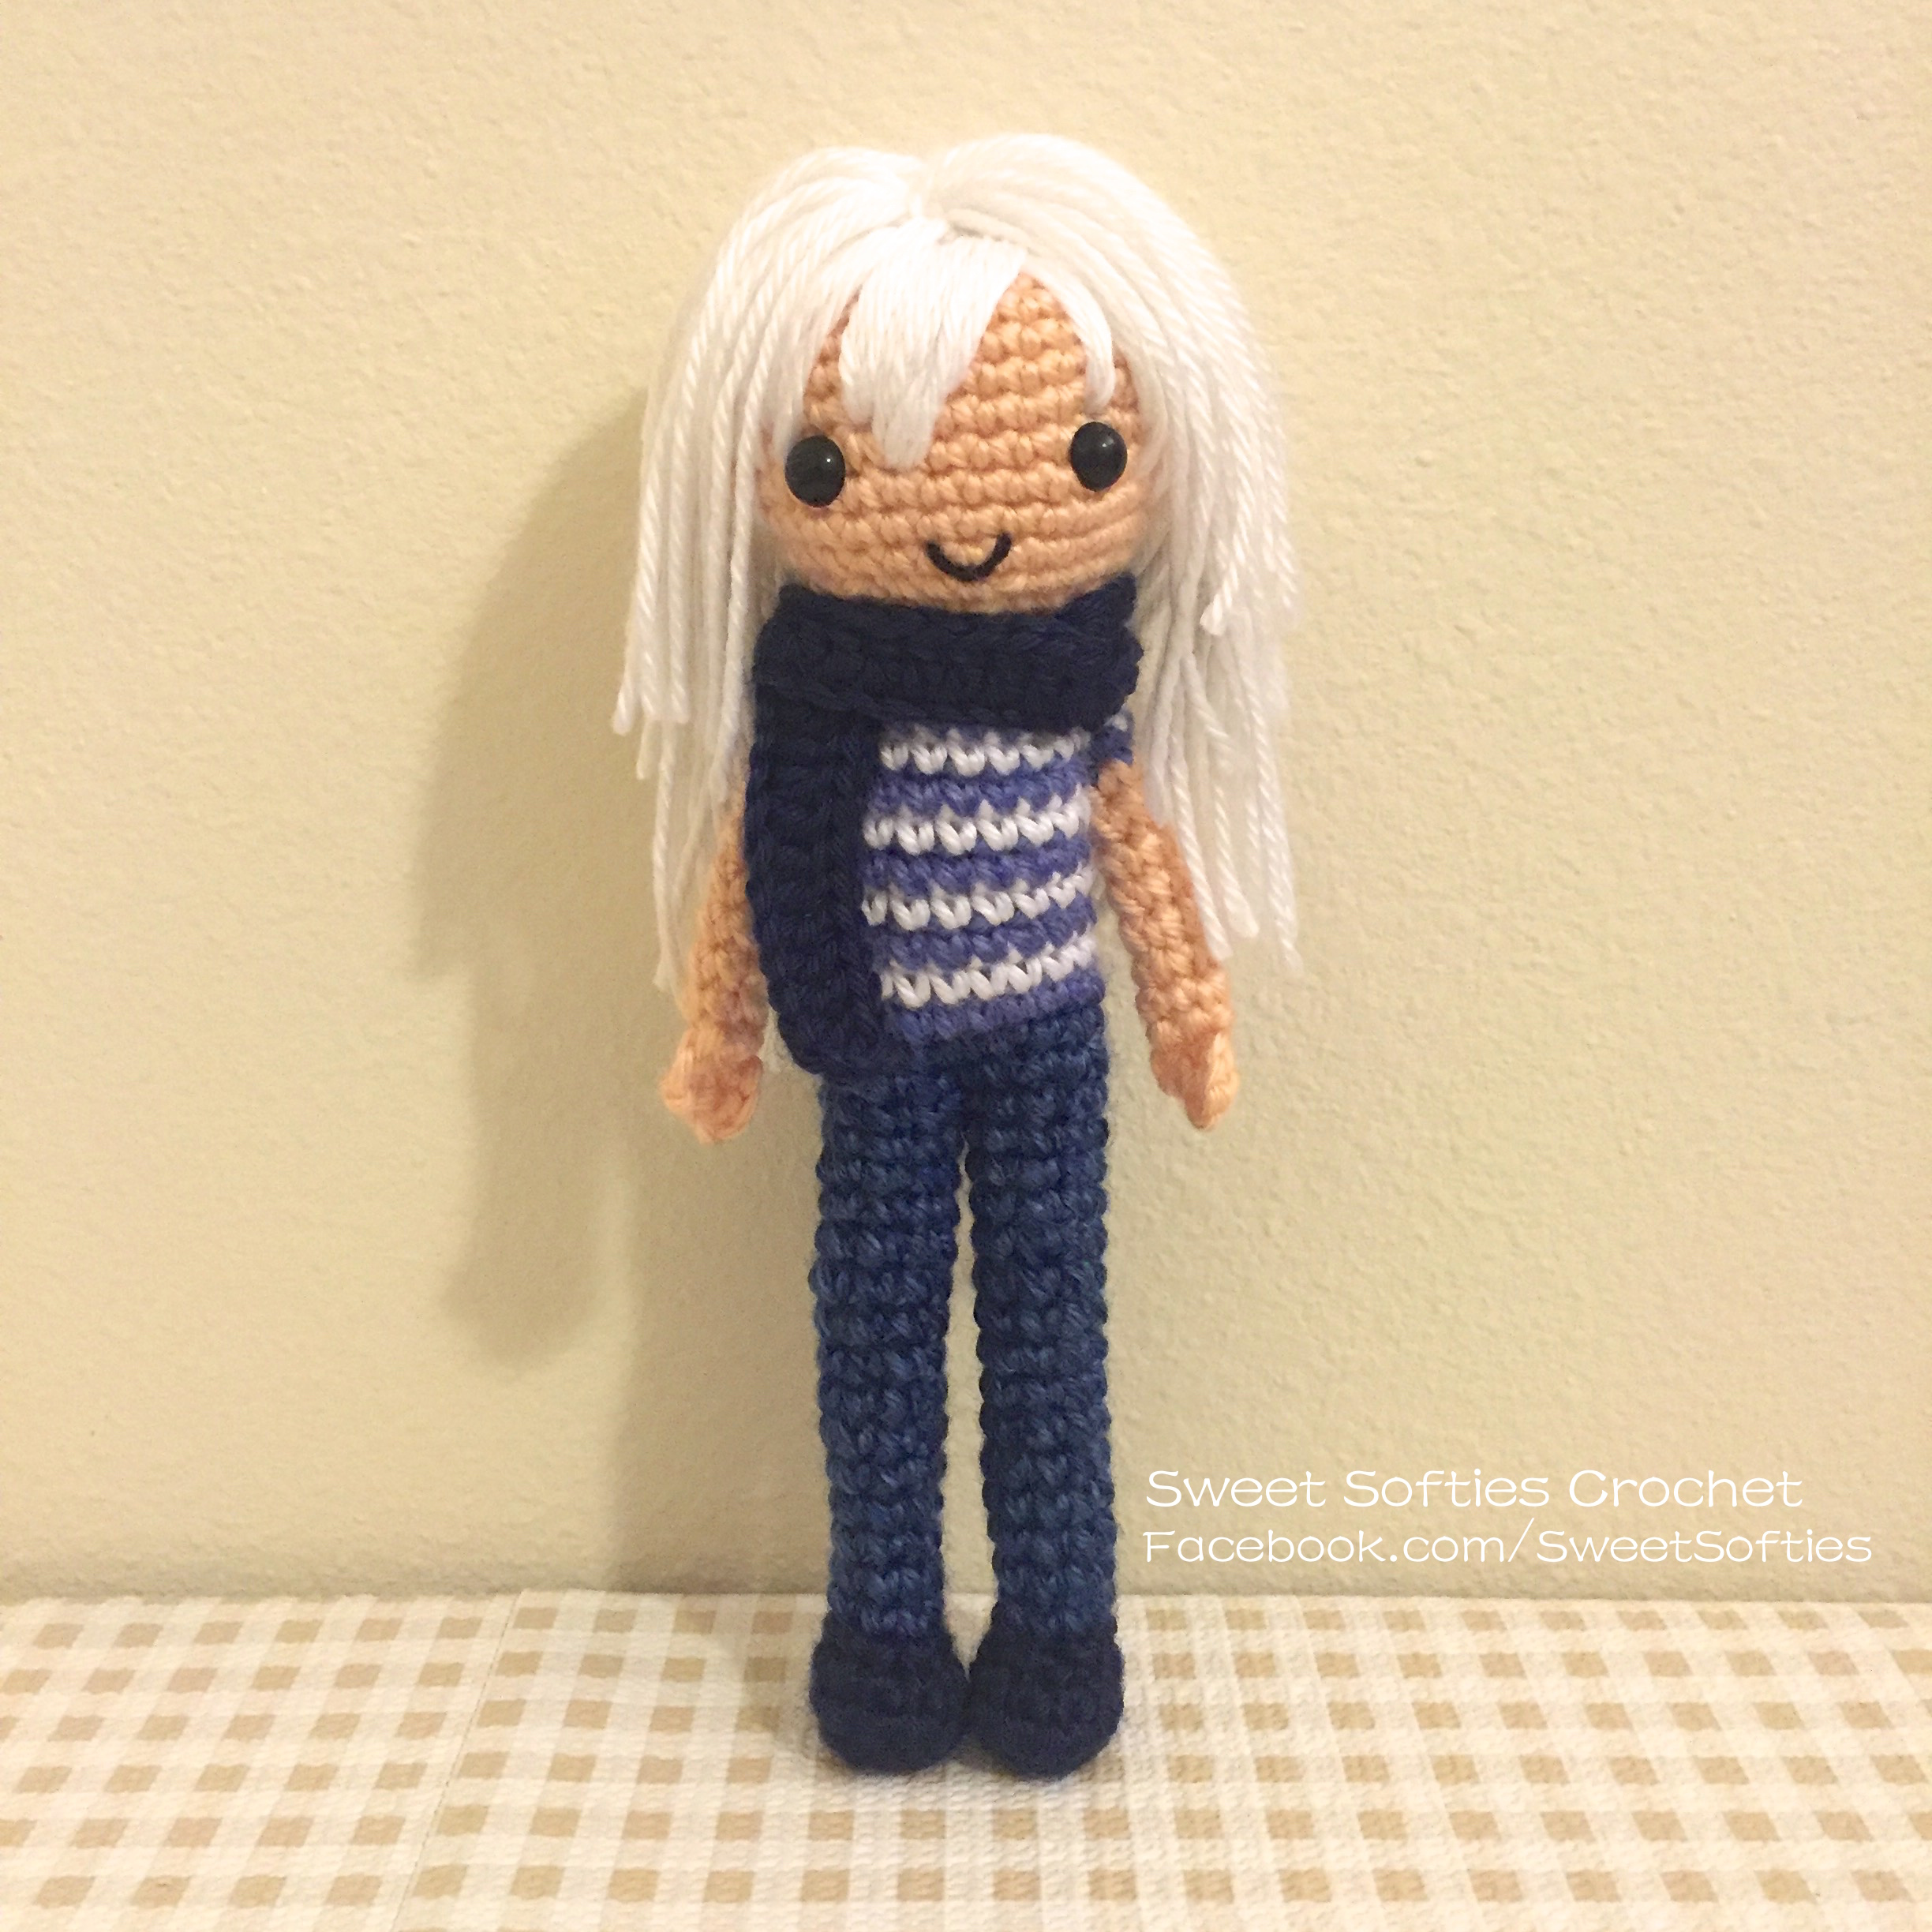 Anime Crochet Doll | Crochet dolls, Crochet doll, Knitted dolls | 2448x2448